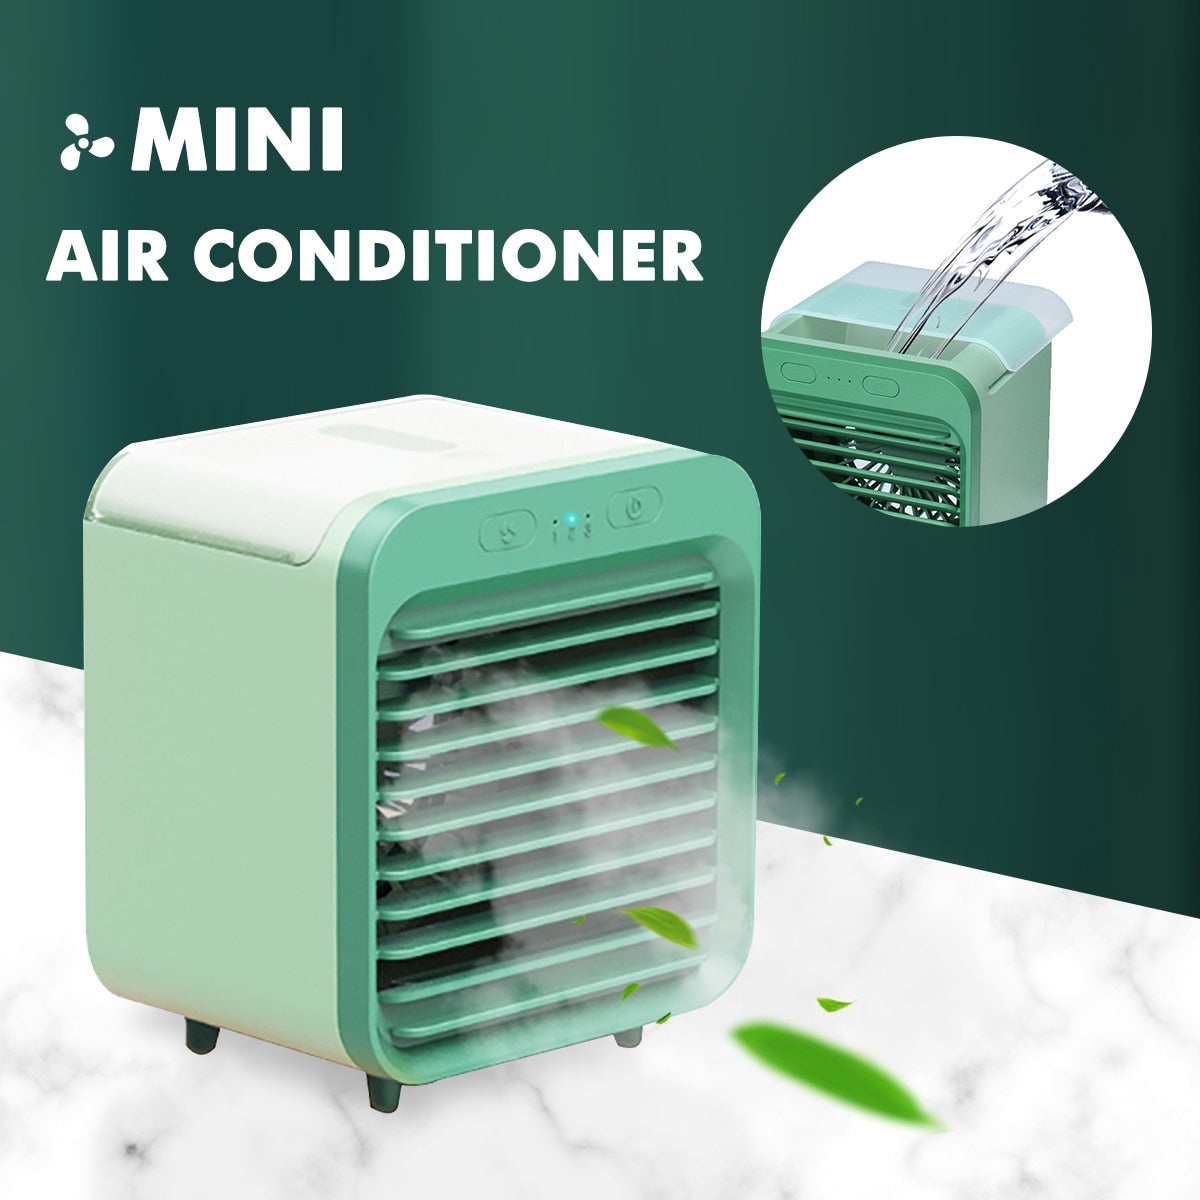 2020 Rechargeable Water-cooled Mini Portable Air Conditioner 3 Speeds Cooling